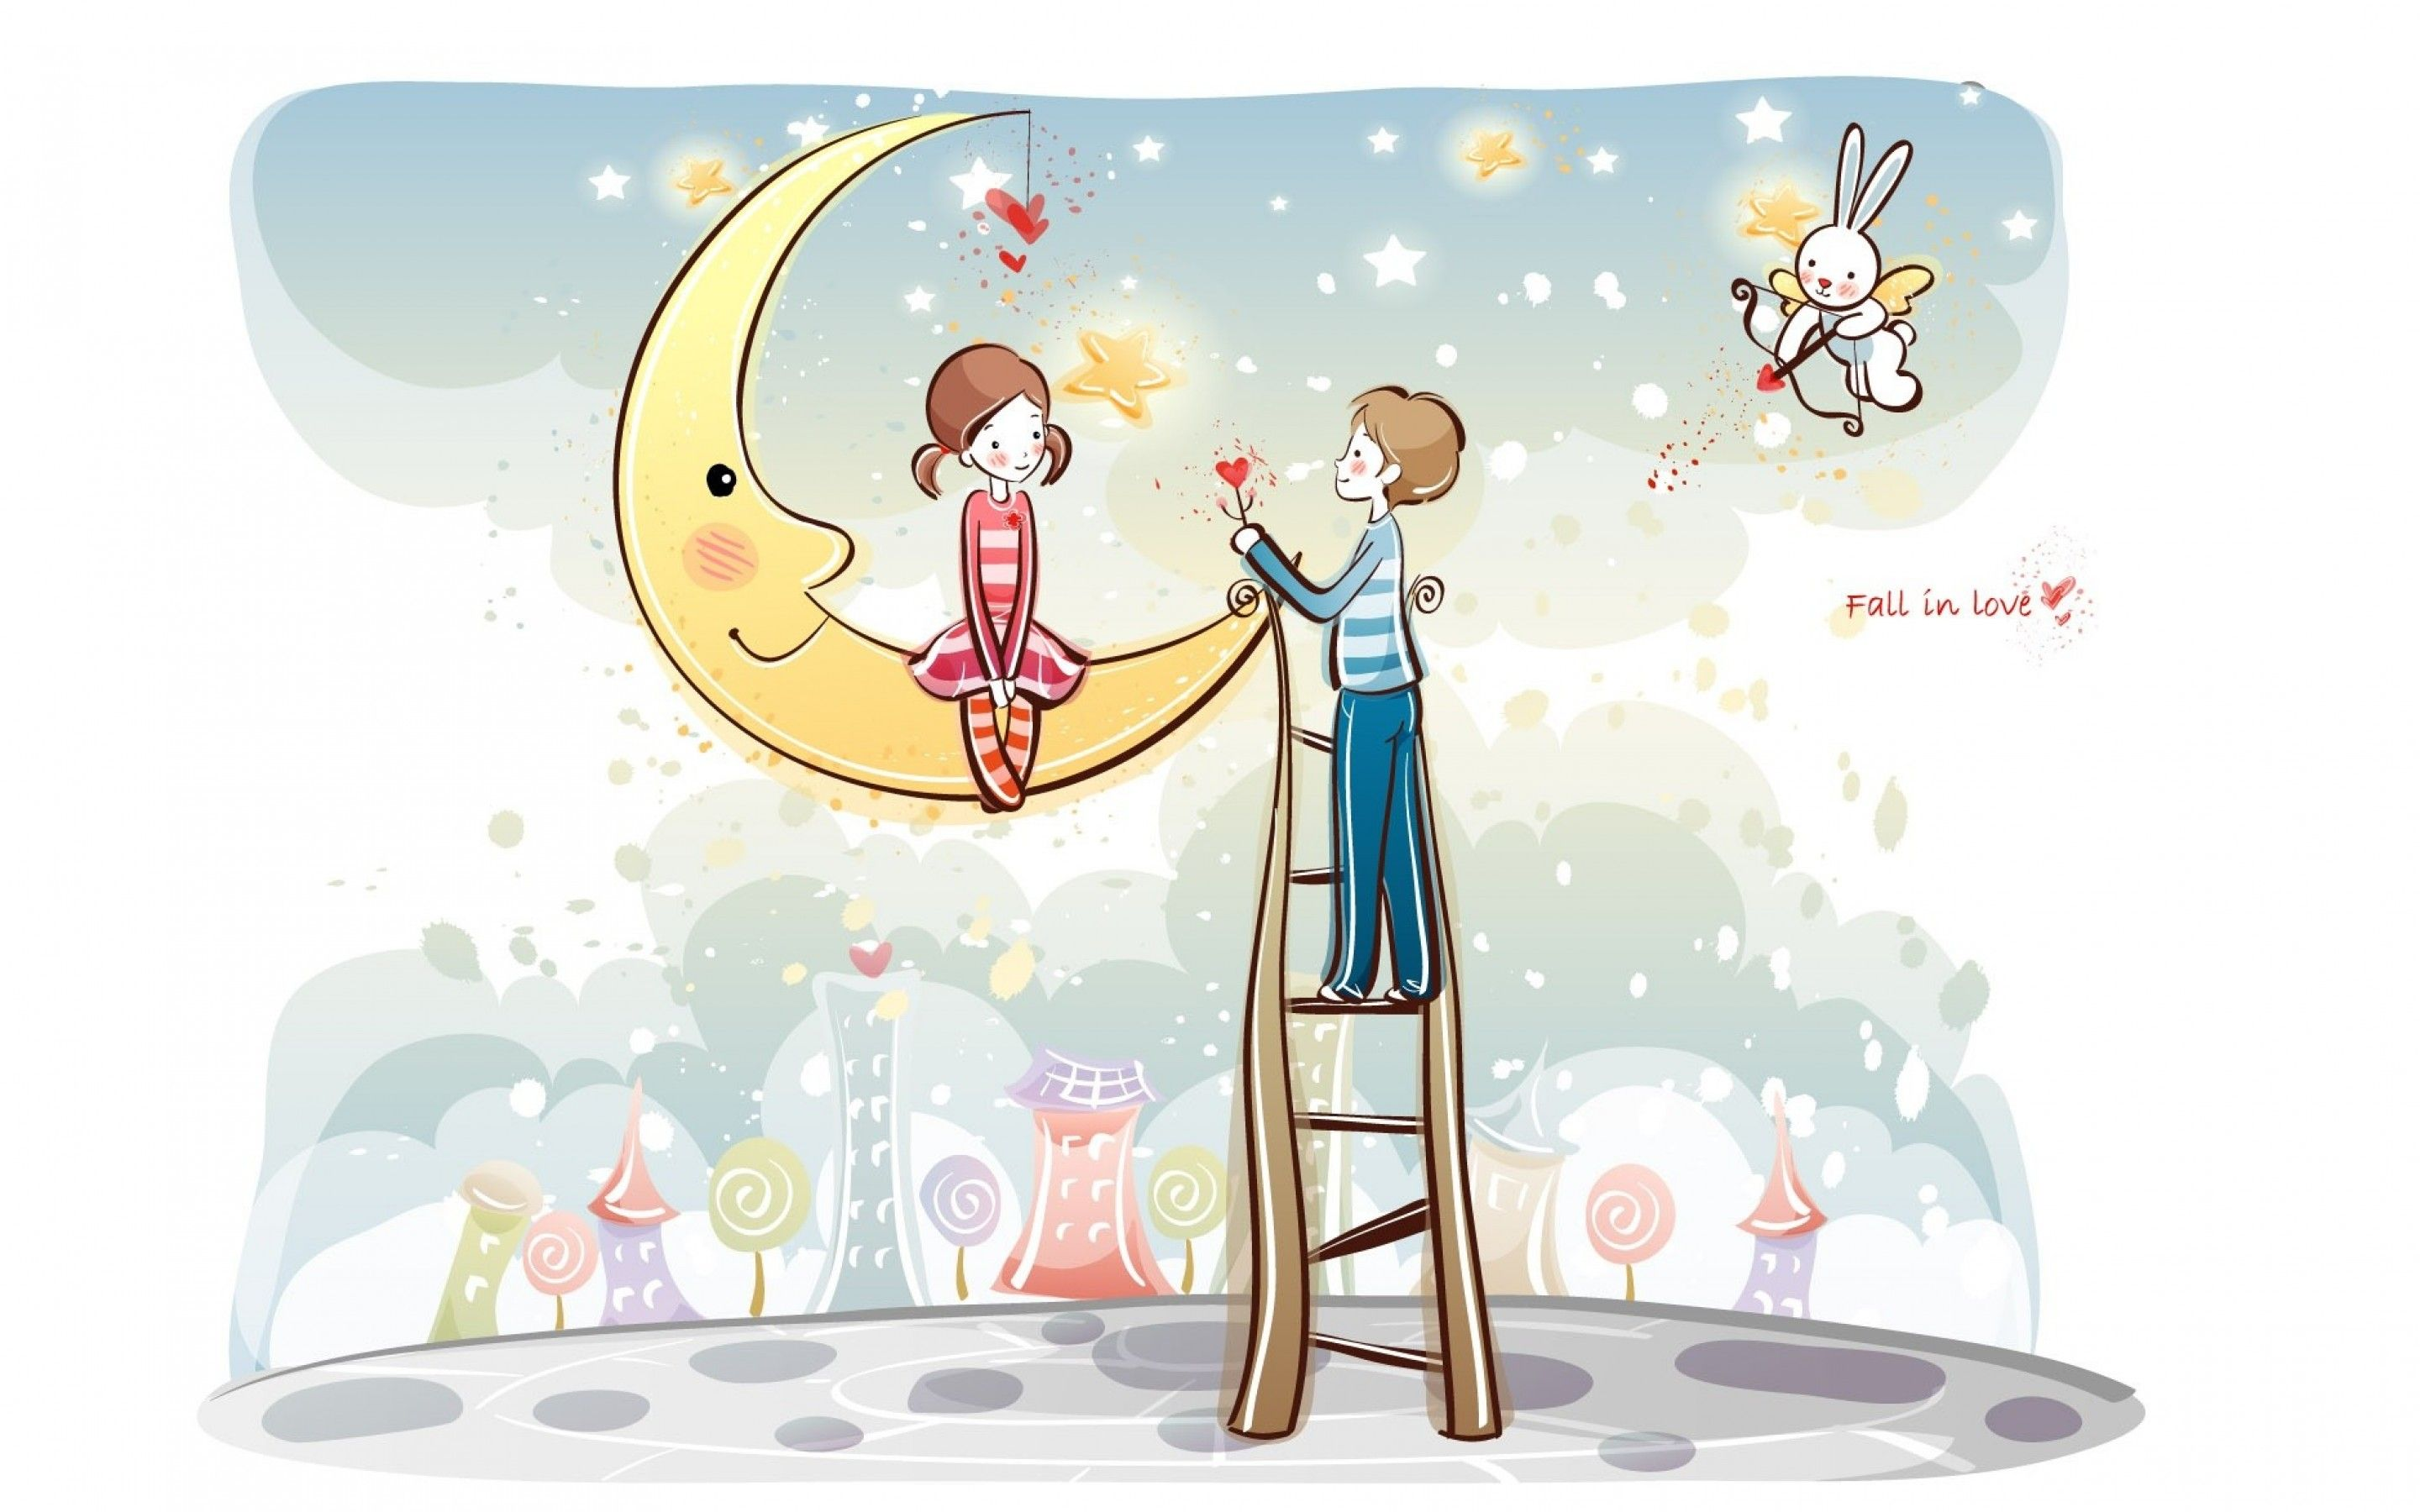 Fantastic Cartoon Love HD Wallpaper For Android - 61d64ab3daf2b0e5859fc395a0639cae  Gallery_2939.jpg